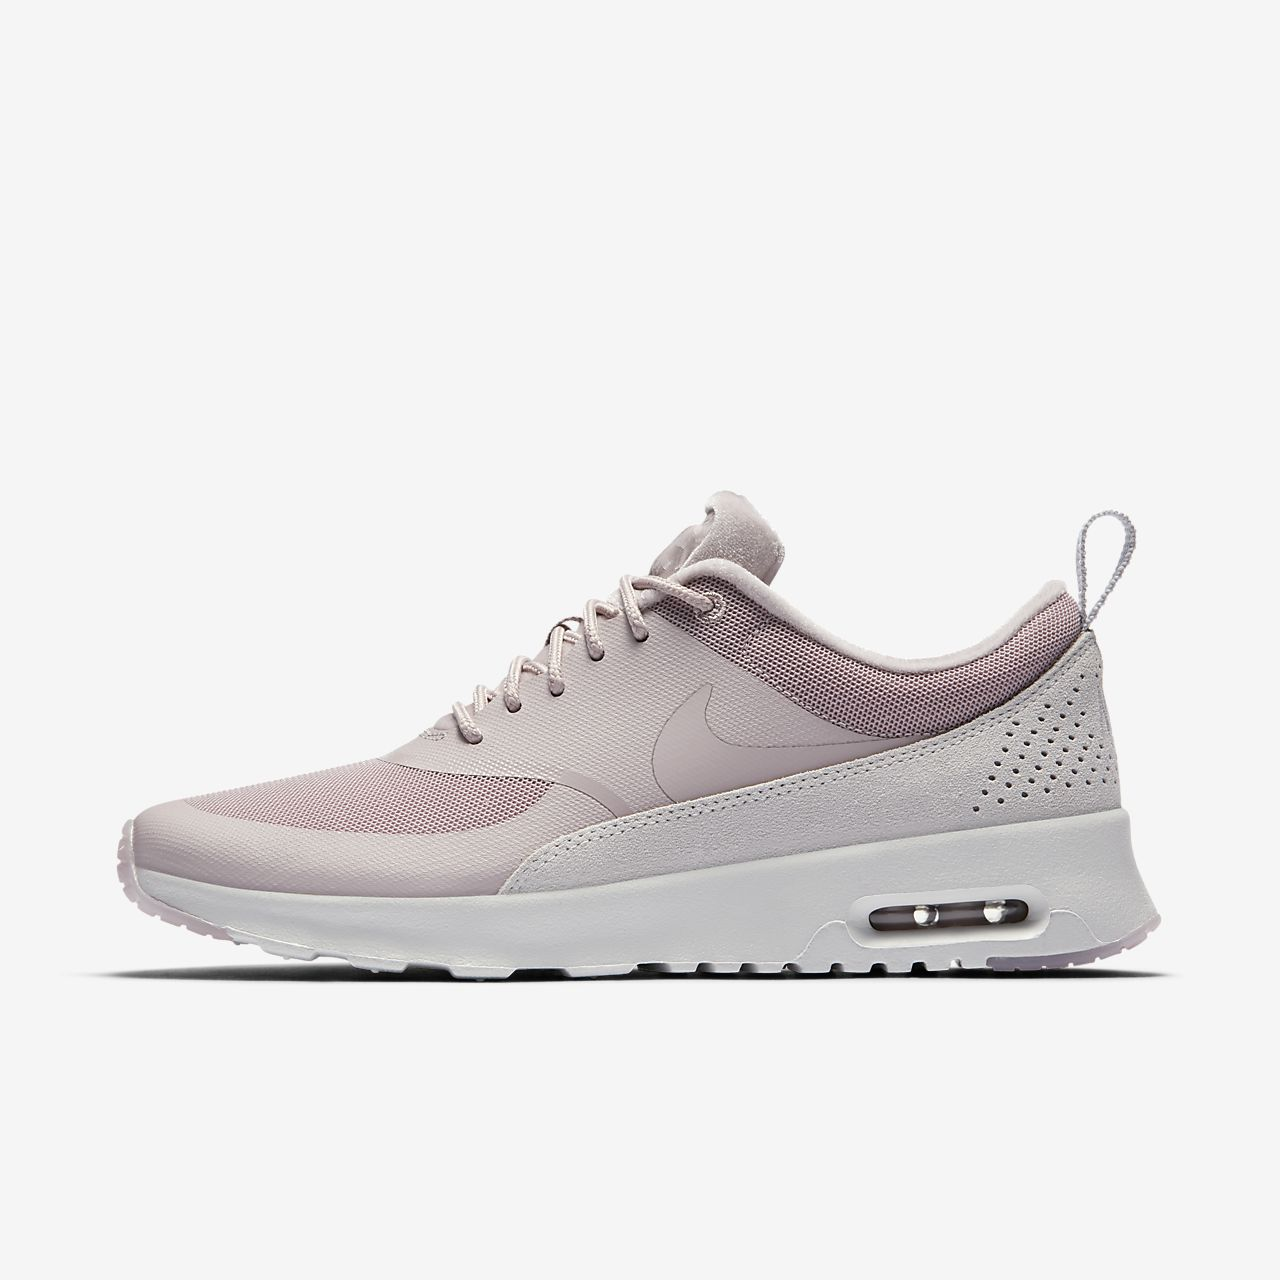 Nike WMNS Air Max Thea, Low-Top Femme, Blanc (White/Black), 40.5 EU